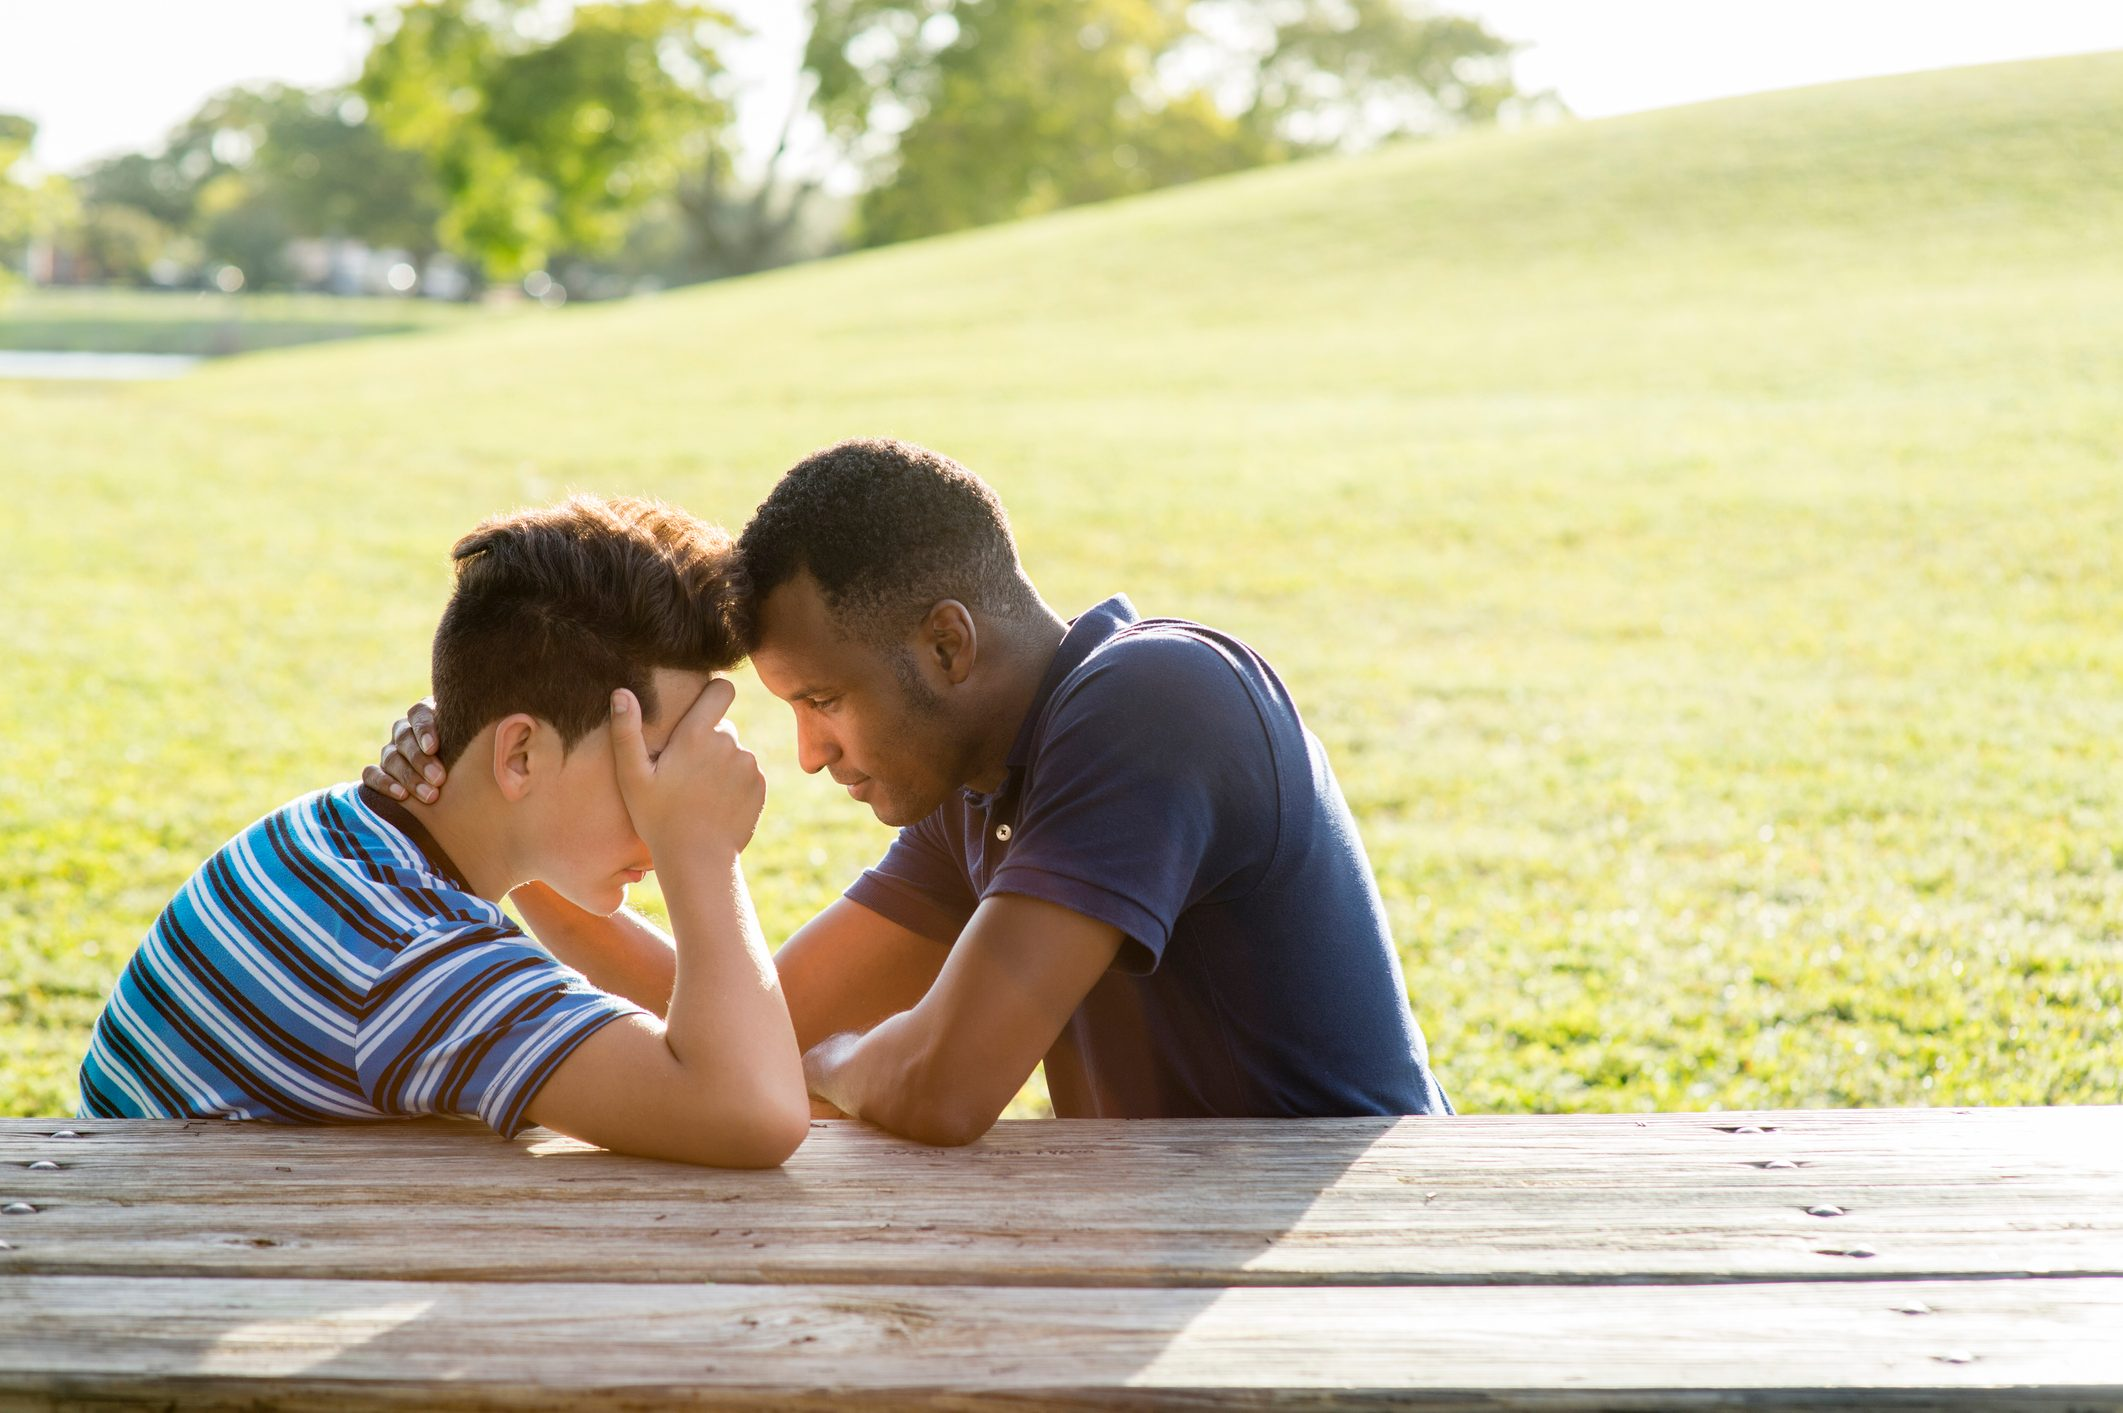 two young med talking at a picnic table in the park